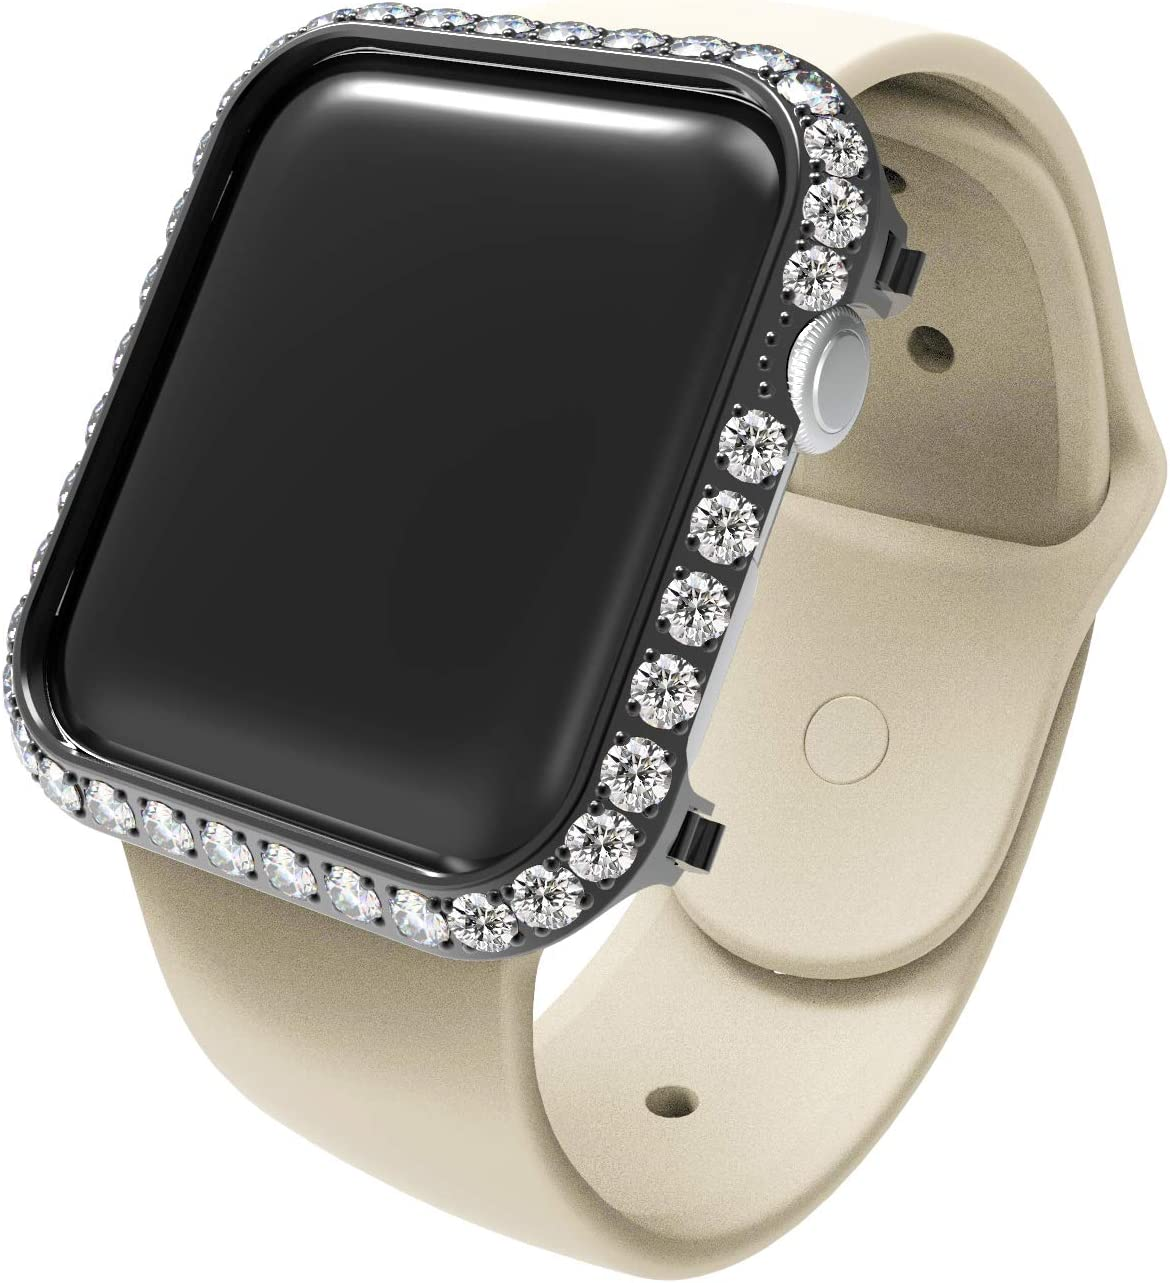 Callancity Compatible Bling Watch Bumper Metal Rhinestone Crystal 3.0 Big Diamond Jewelry Bezel Case face Cover Compatible for Apple Watch Series 5 4 44mm(black)